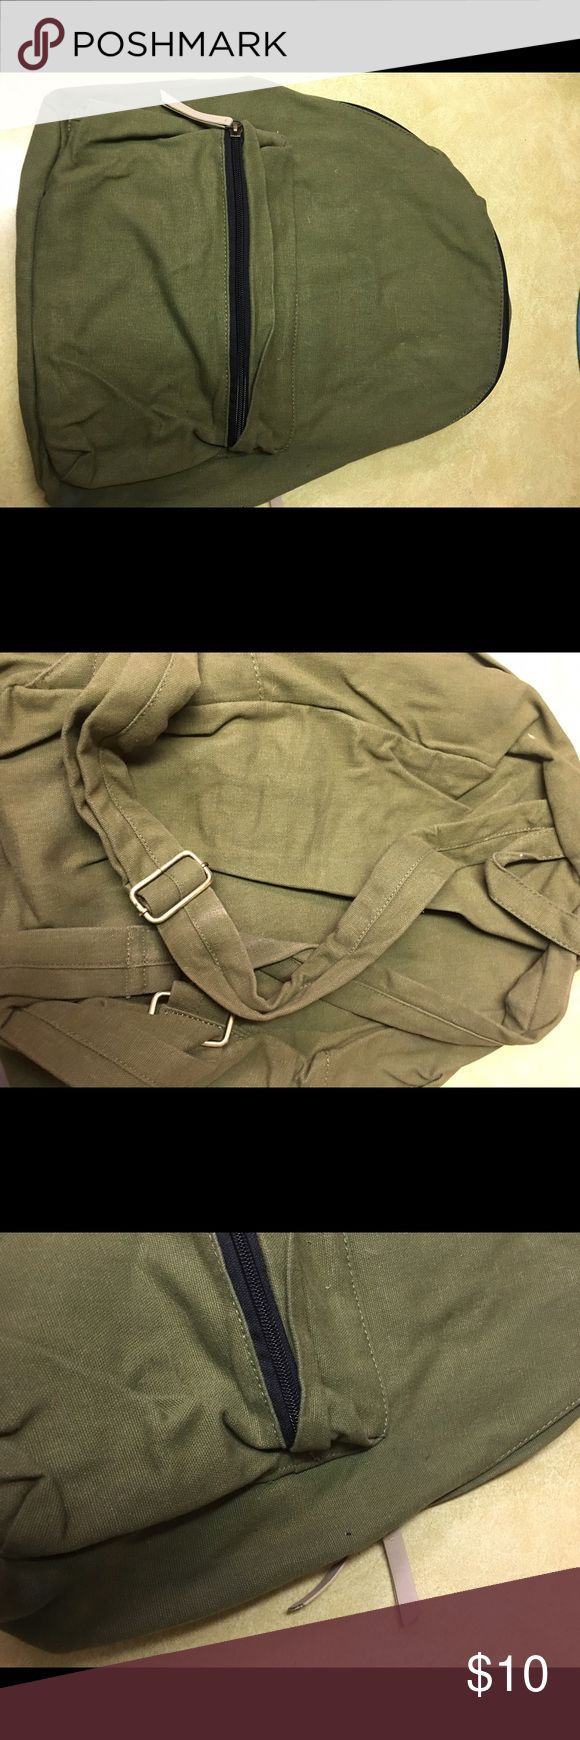 H&M olive green backpack 🎒 H&M olive green backpack 🎒 used on one trip to Brazil H&M Bags Backpacks